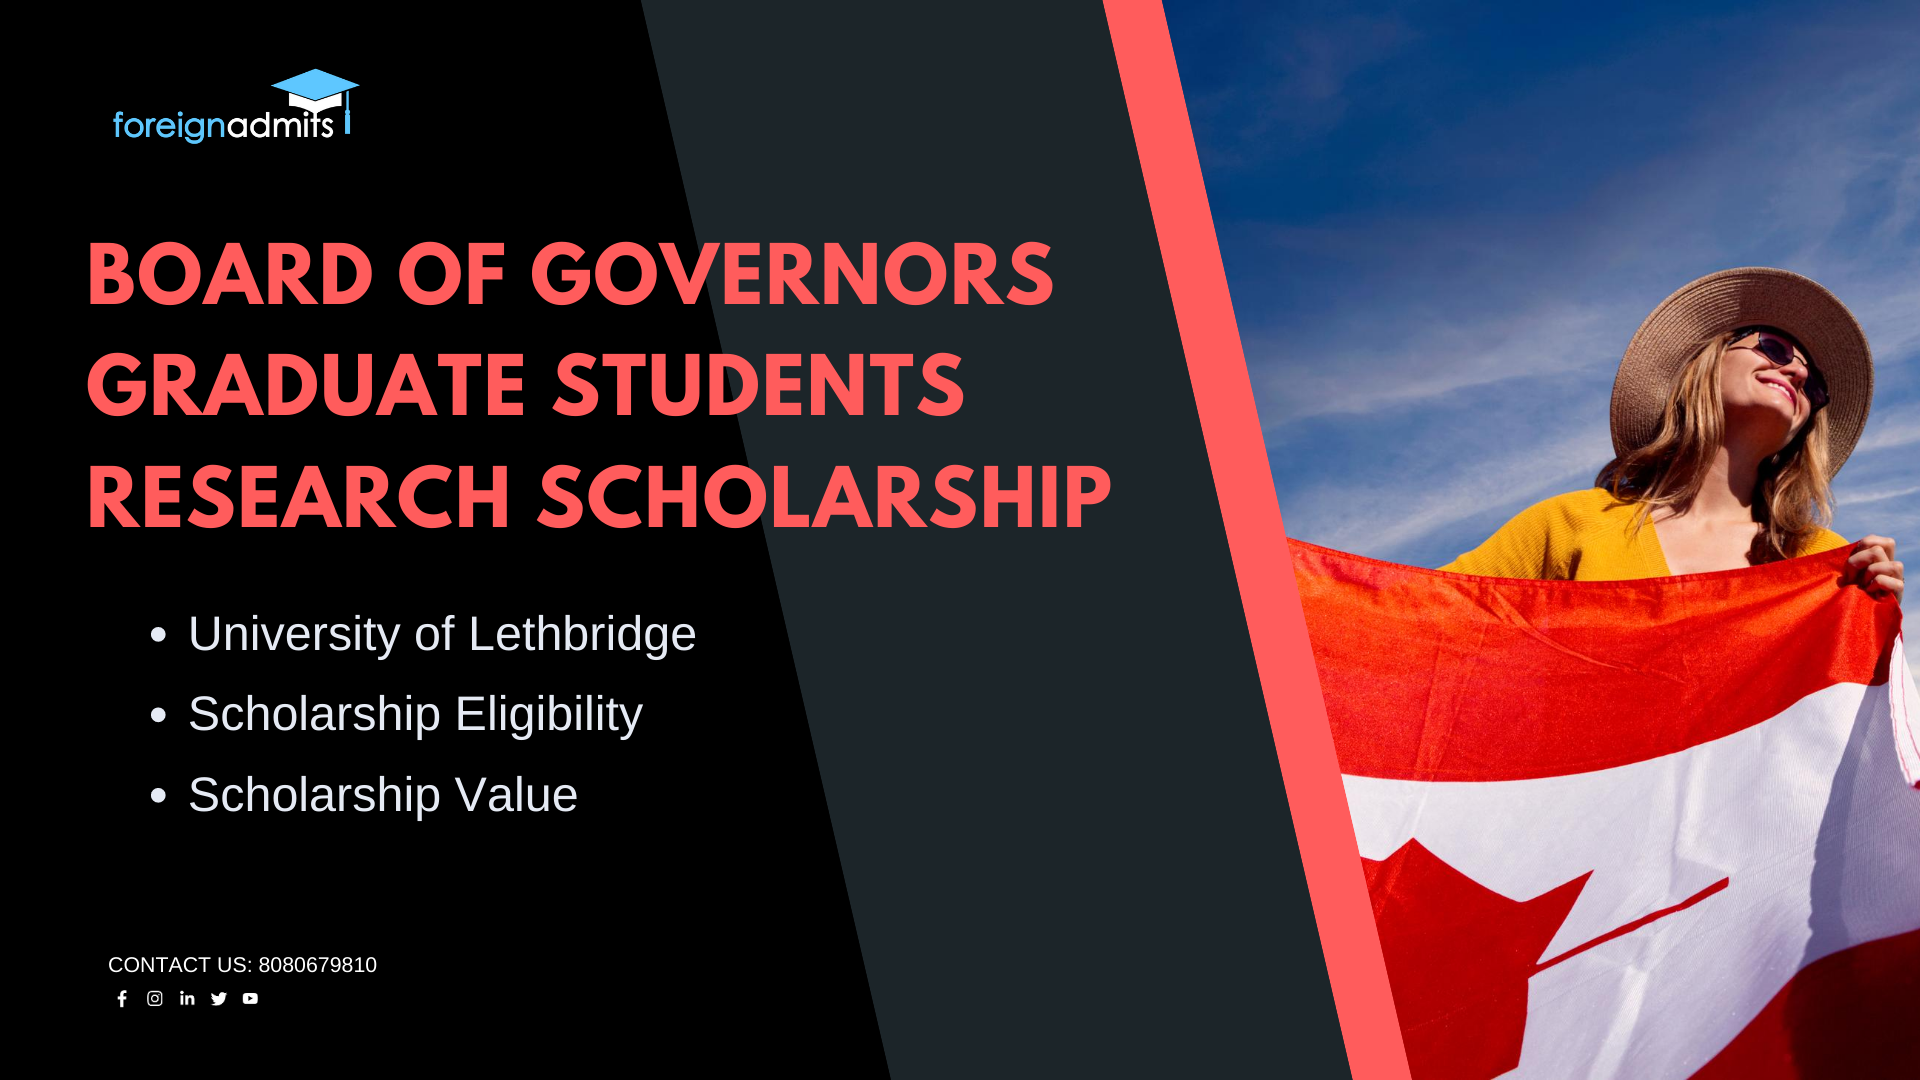 Board of Governors Graduate Students Research Scholarship